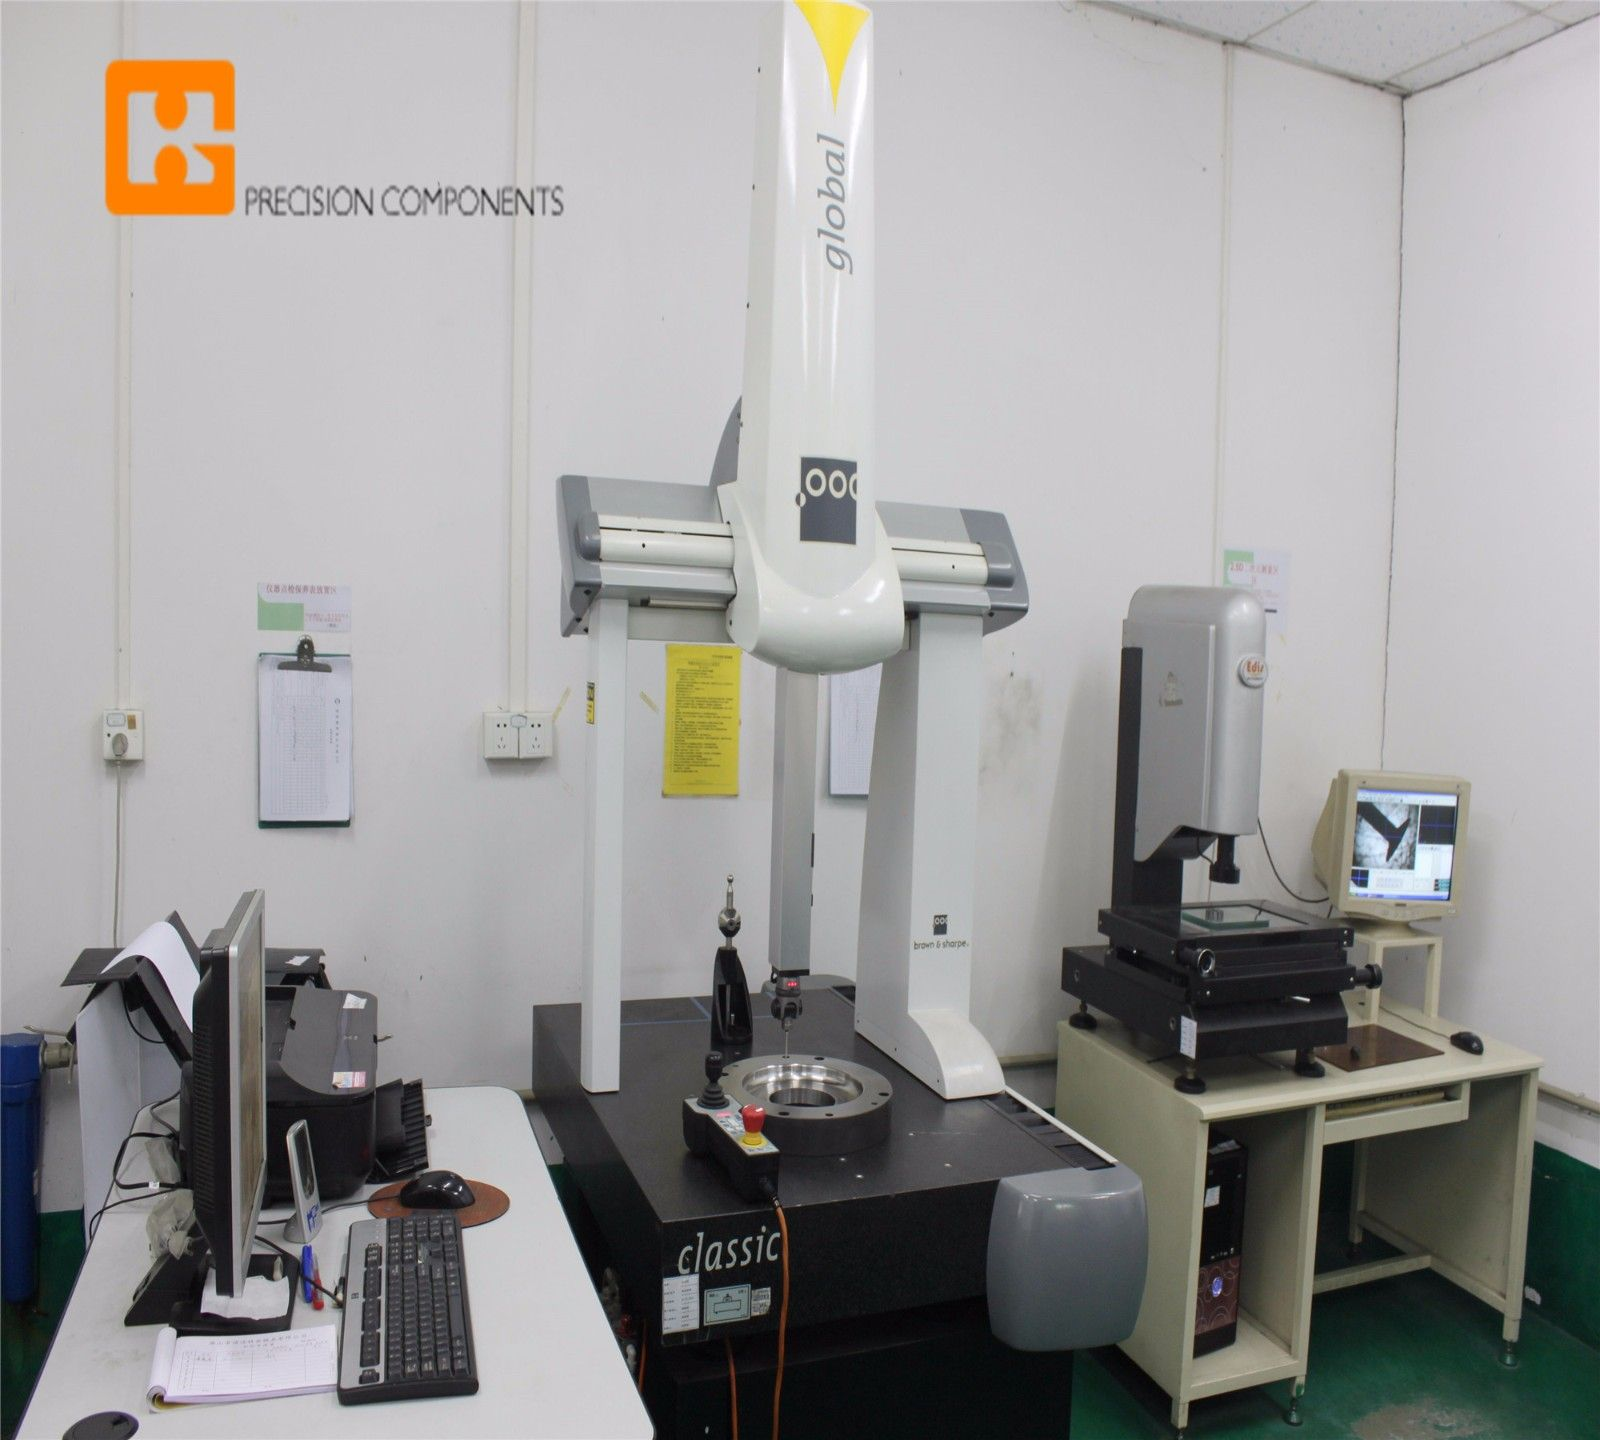 We are a professional manufacturer of precision components